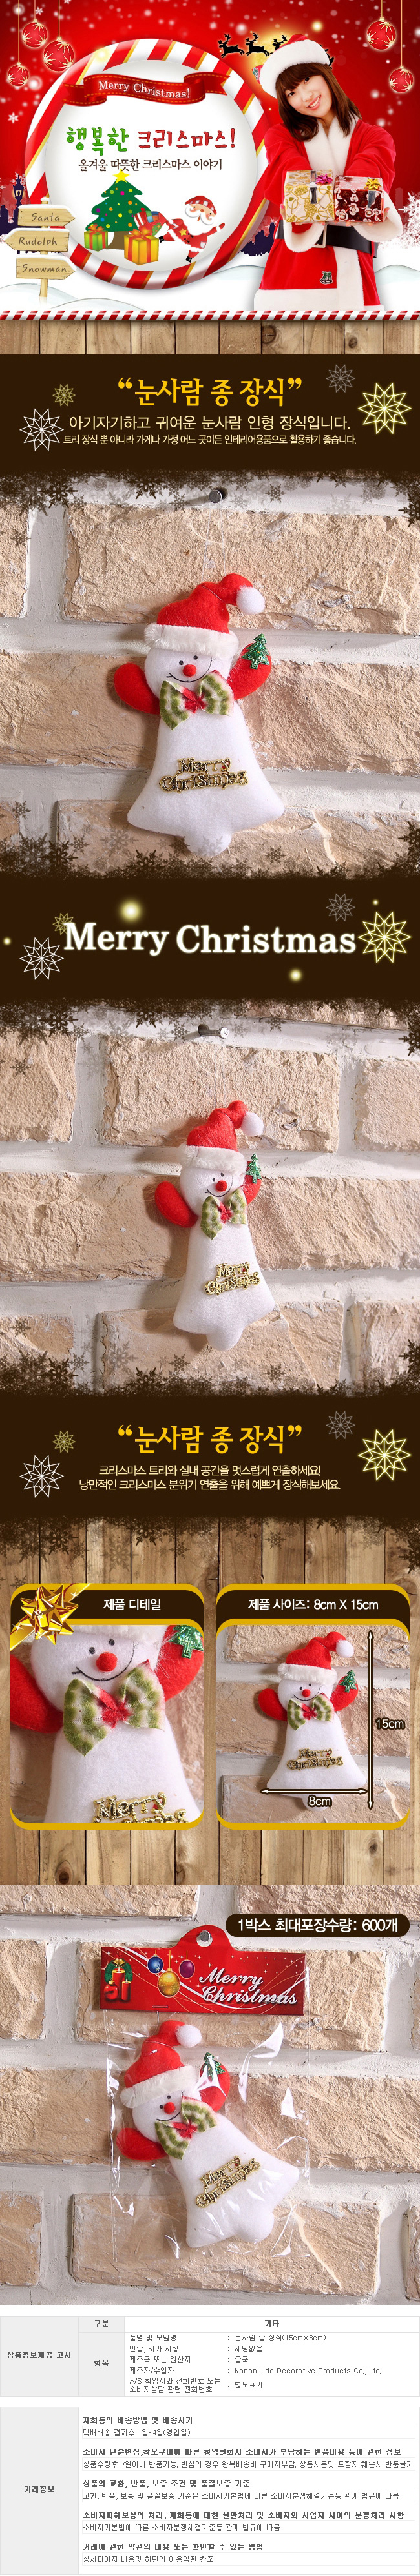 [ WINEQOK ] Christmas Goods / Snowman species 1p decoration ×